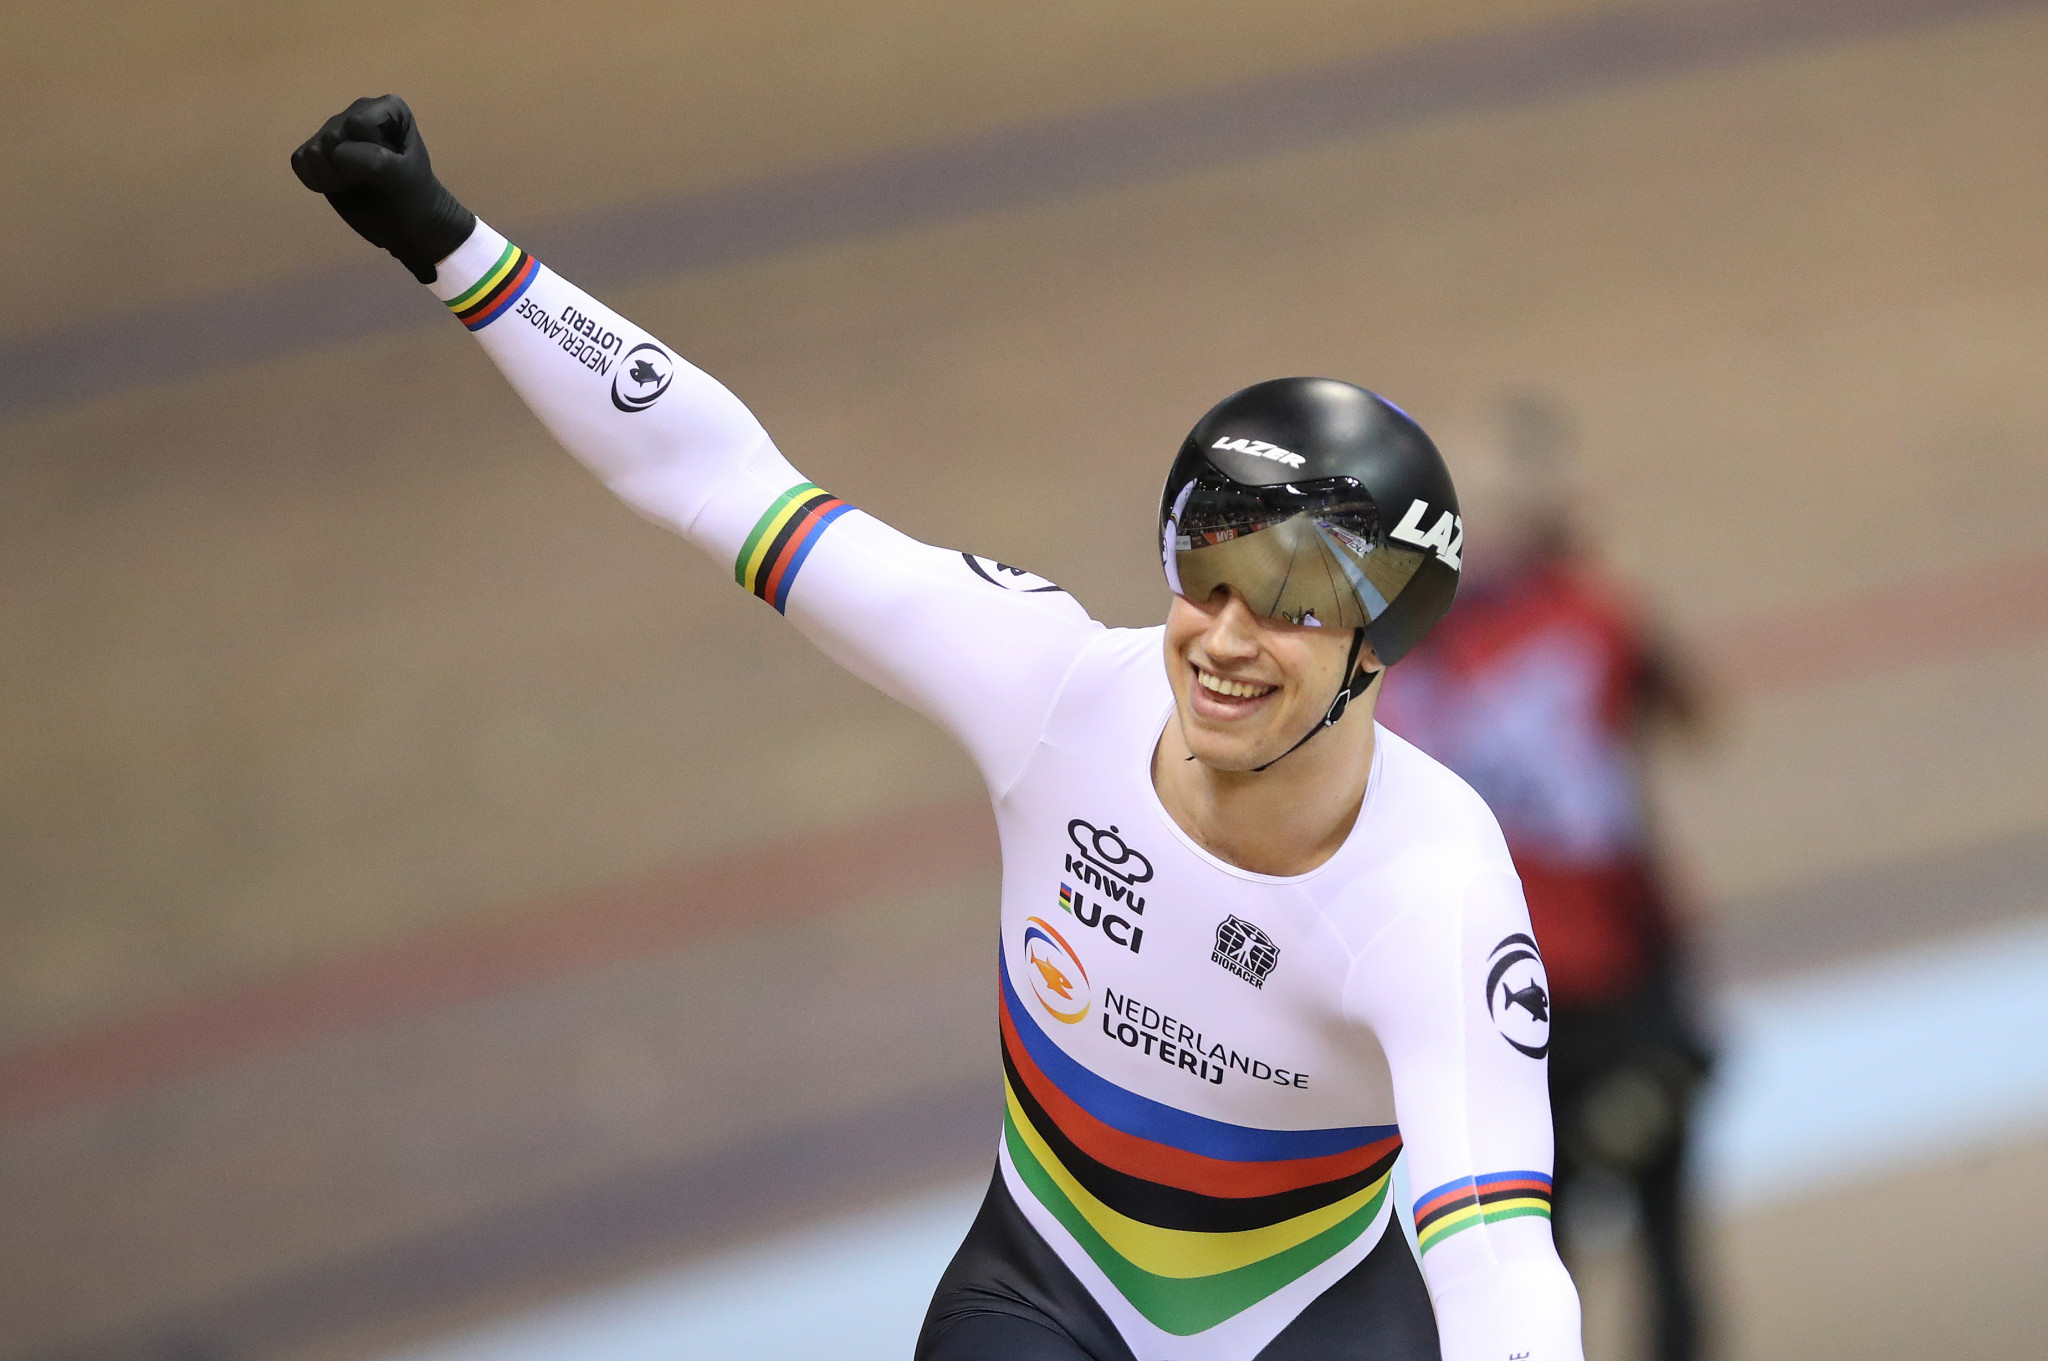 Lavreysen wins repeat of World Championship sprint final at UCI Track World Cup in Hong Kong